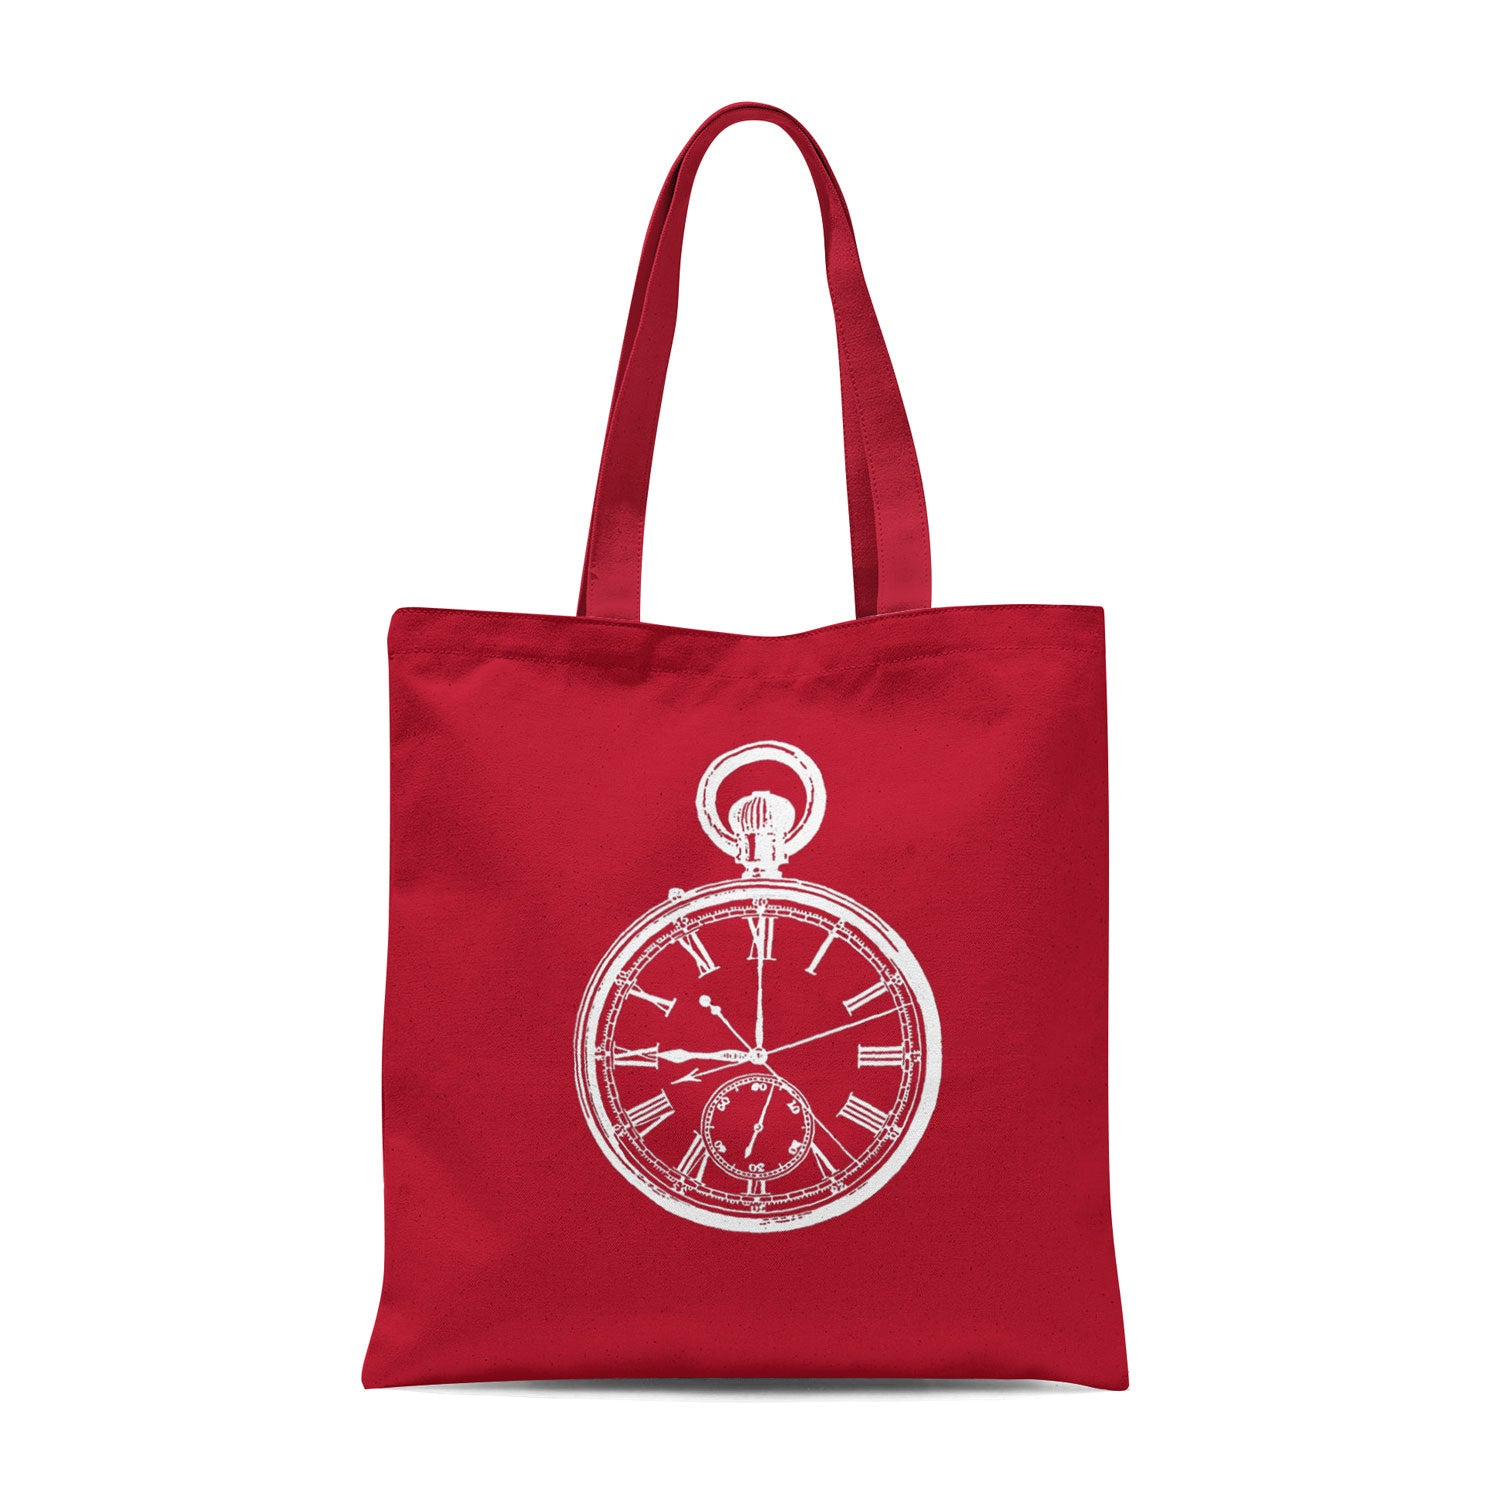 red tote bag with white pocket watch illustration